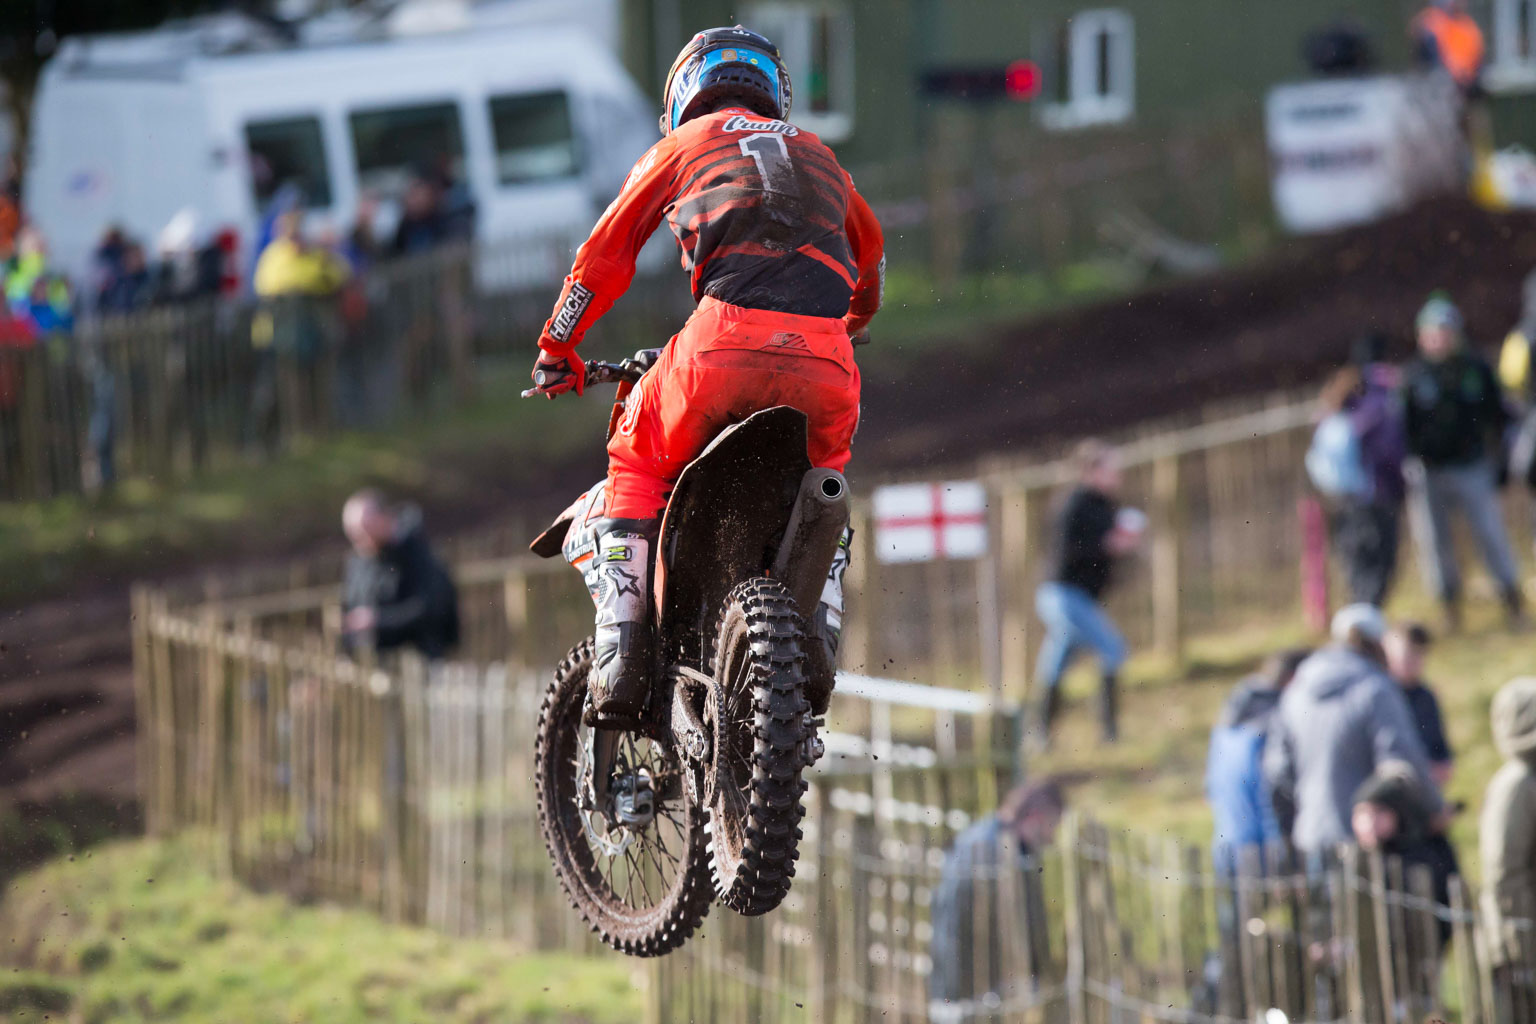 British champ Graeme Irwin had a great debut on the KTM